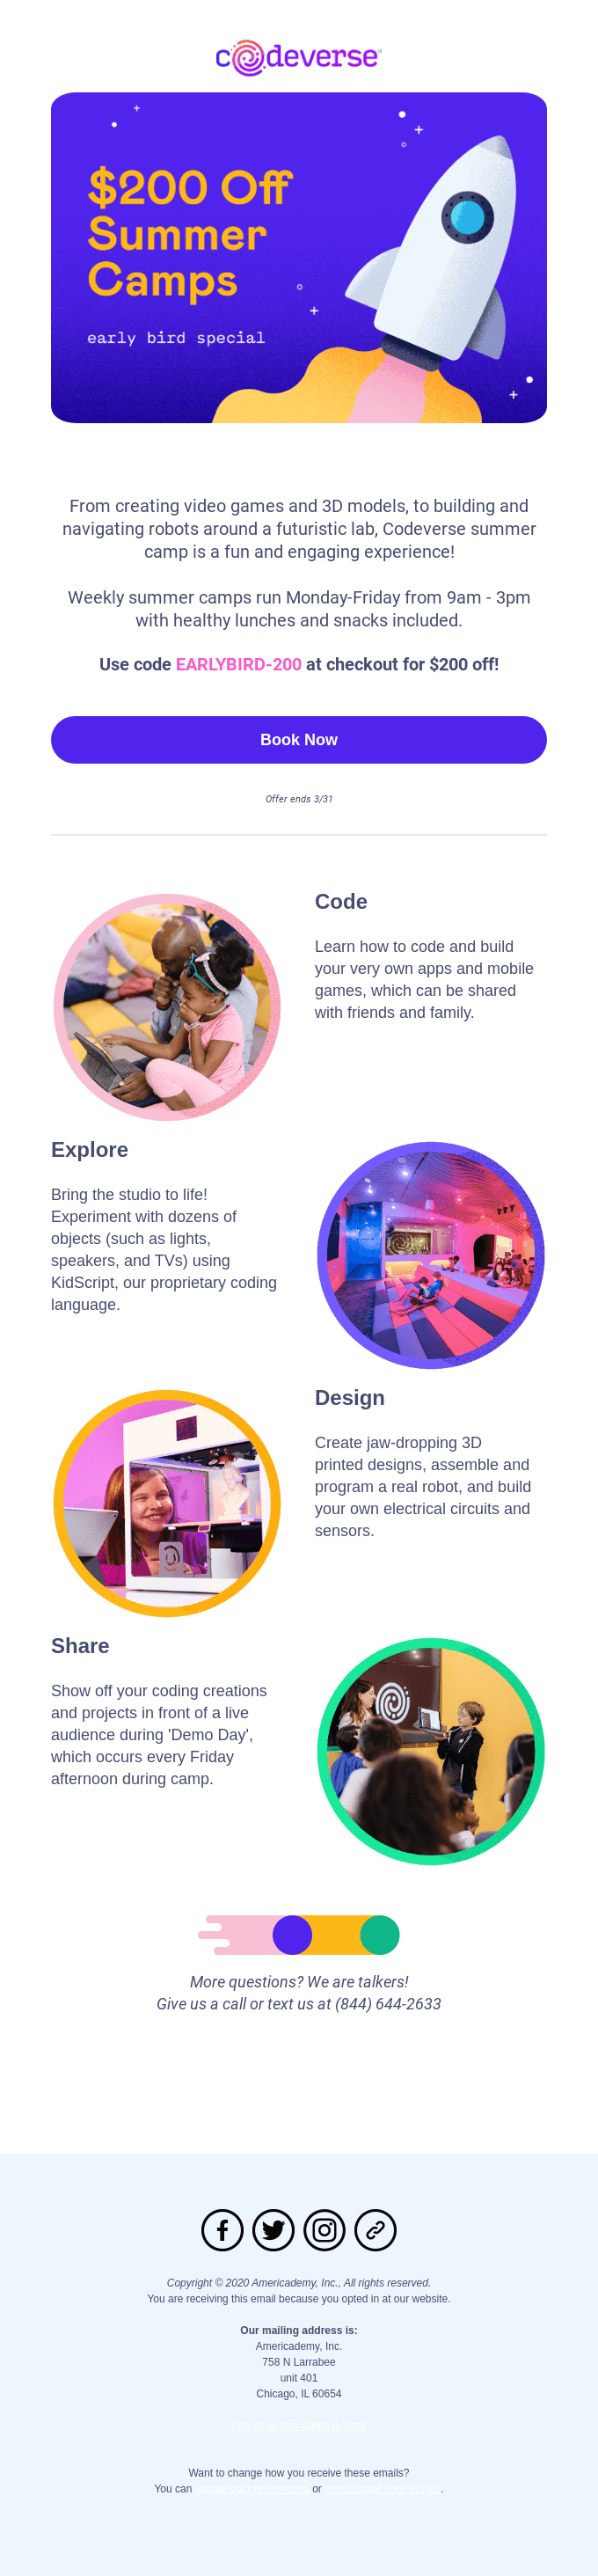 Codeverse Summer Camps 2020 are here!